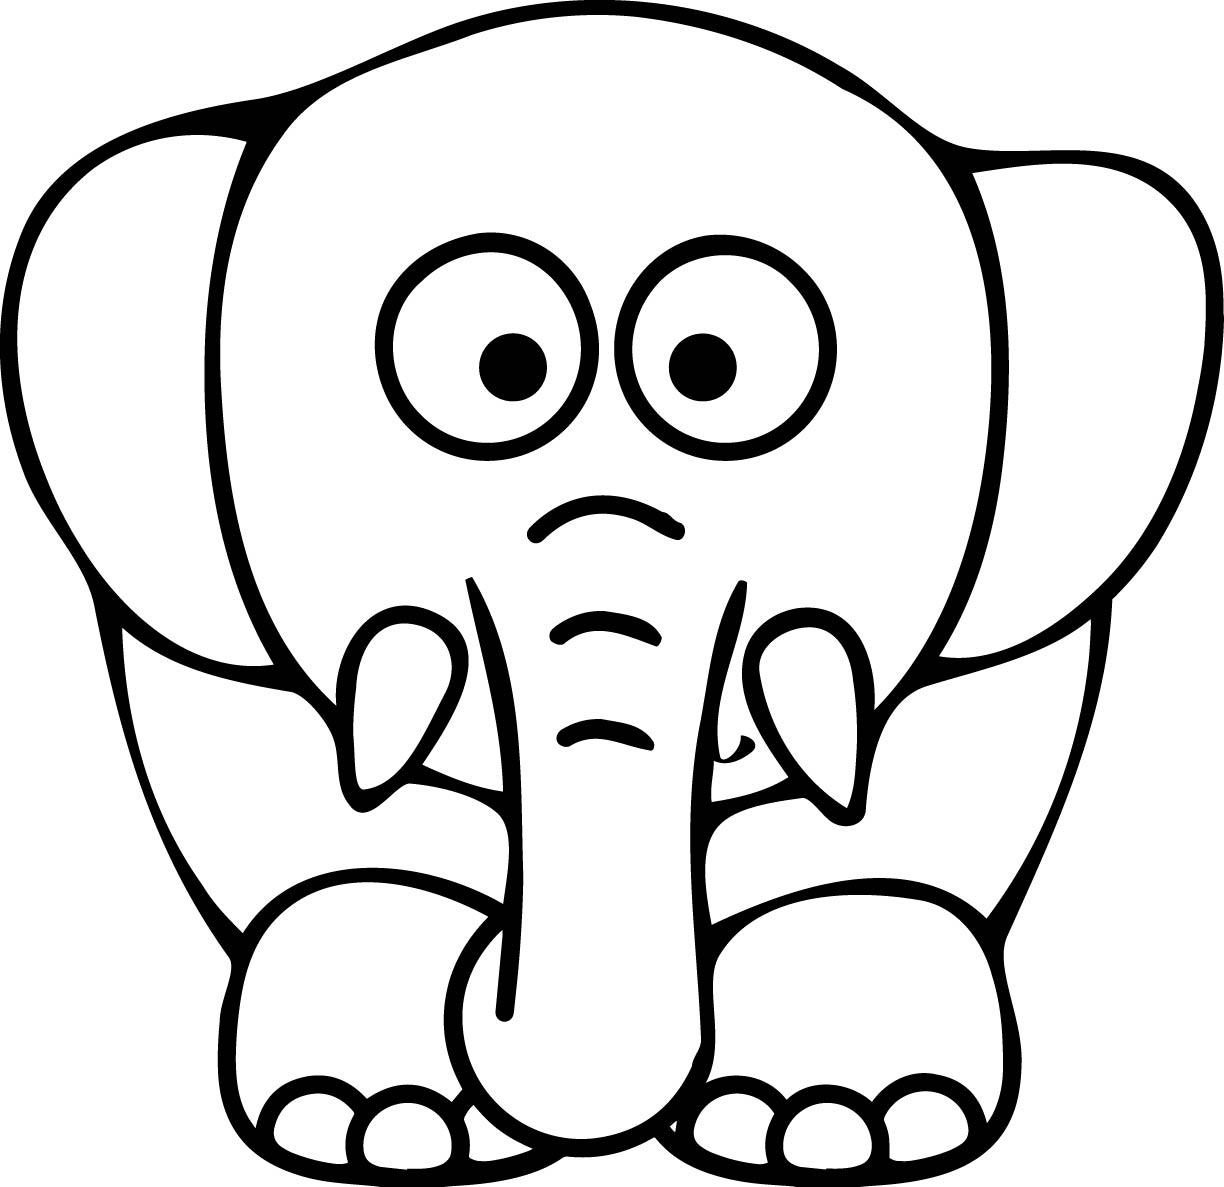 elephant coloring picture elephant coloring pages free download on clipartmag elephant picture coloring